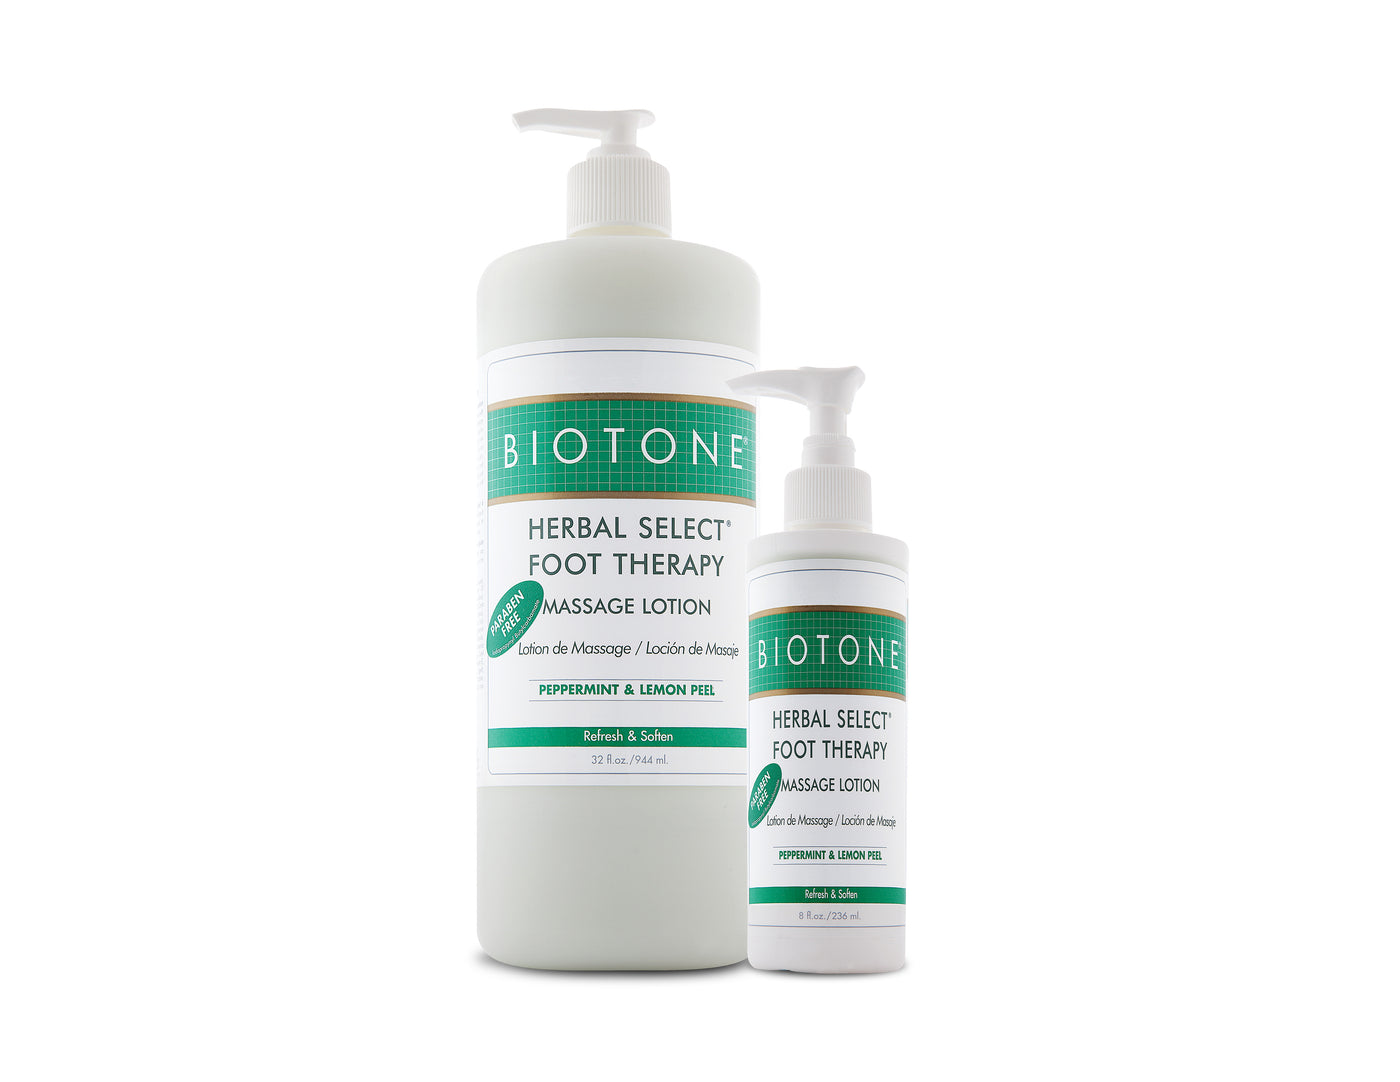 Biotone Herbal Vælg Foot Therapy Massage Lotion Thera-7596